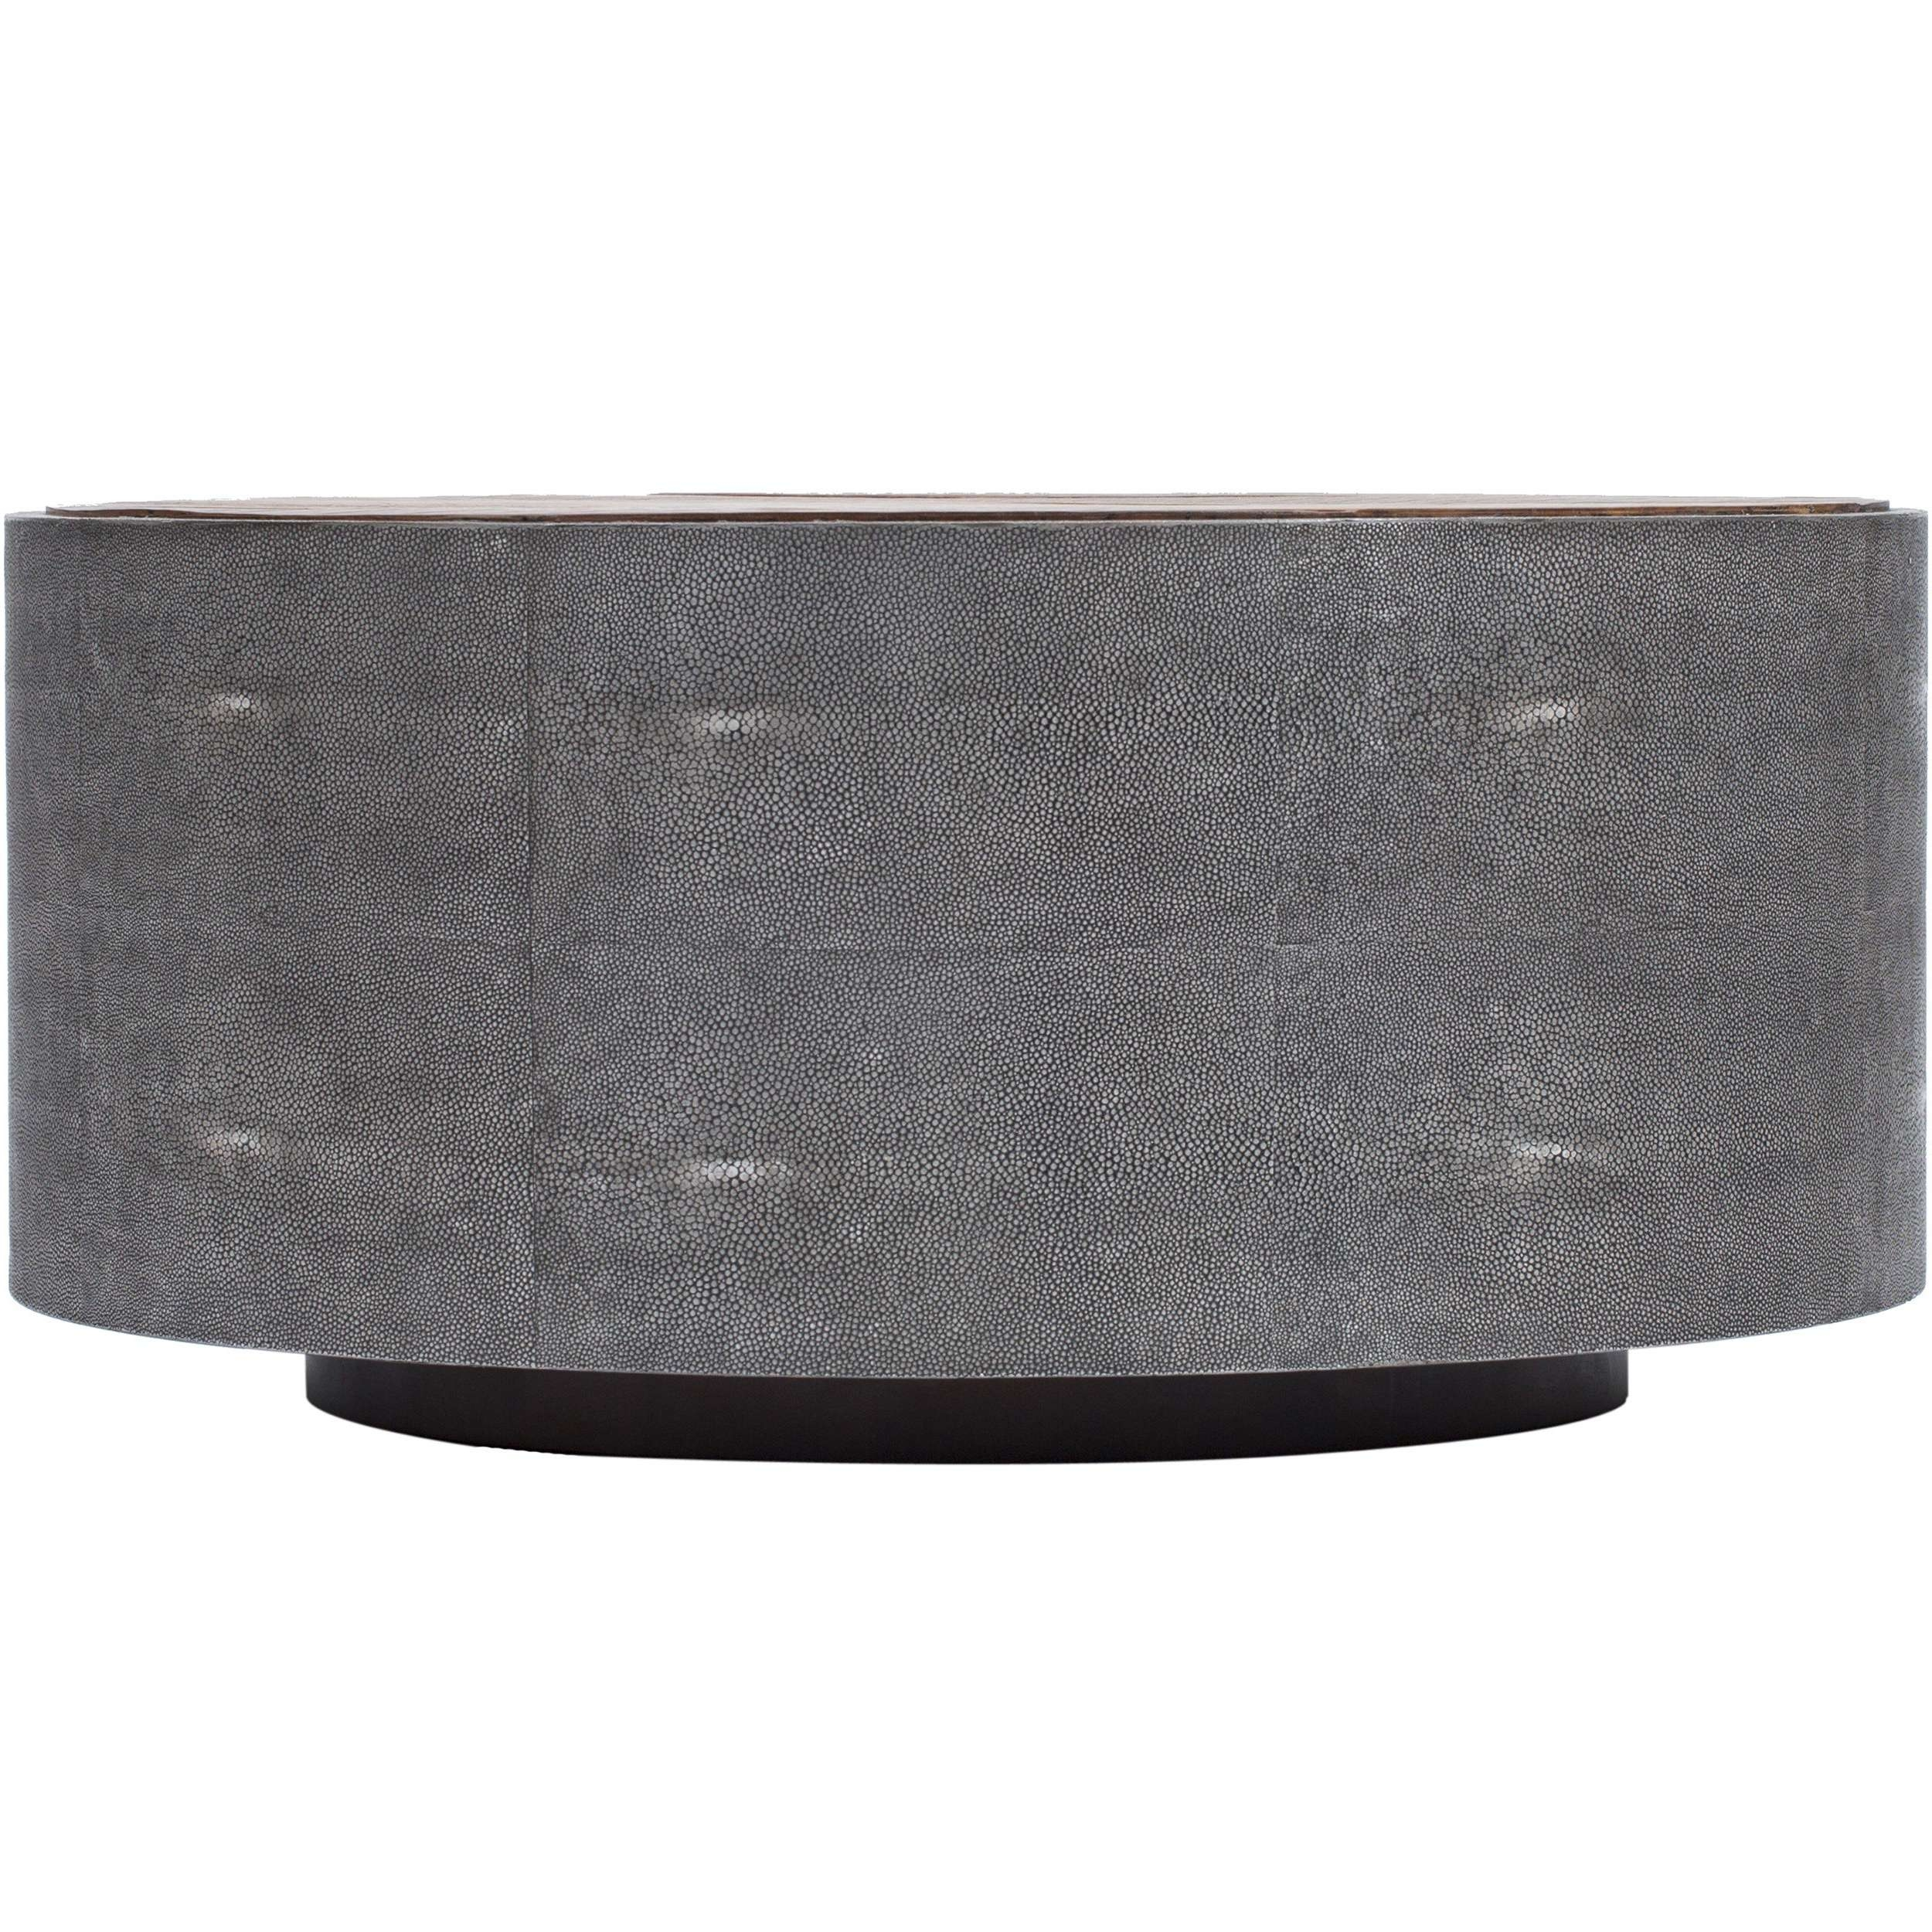 Best And Newest Round Coffee Tables For Crosby Round Coffee Table – Coffee Tables – Accent Tables – Furniture (View 6 of 20)